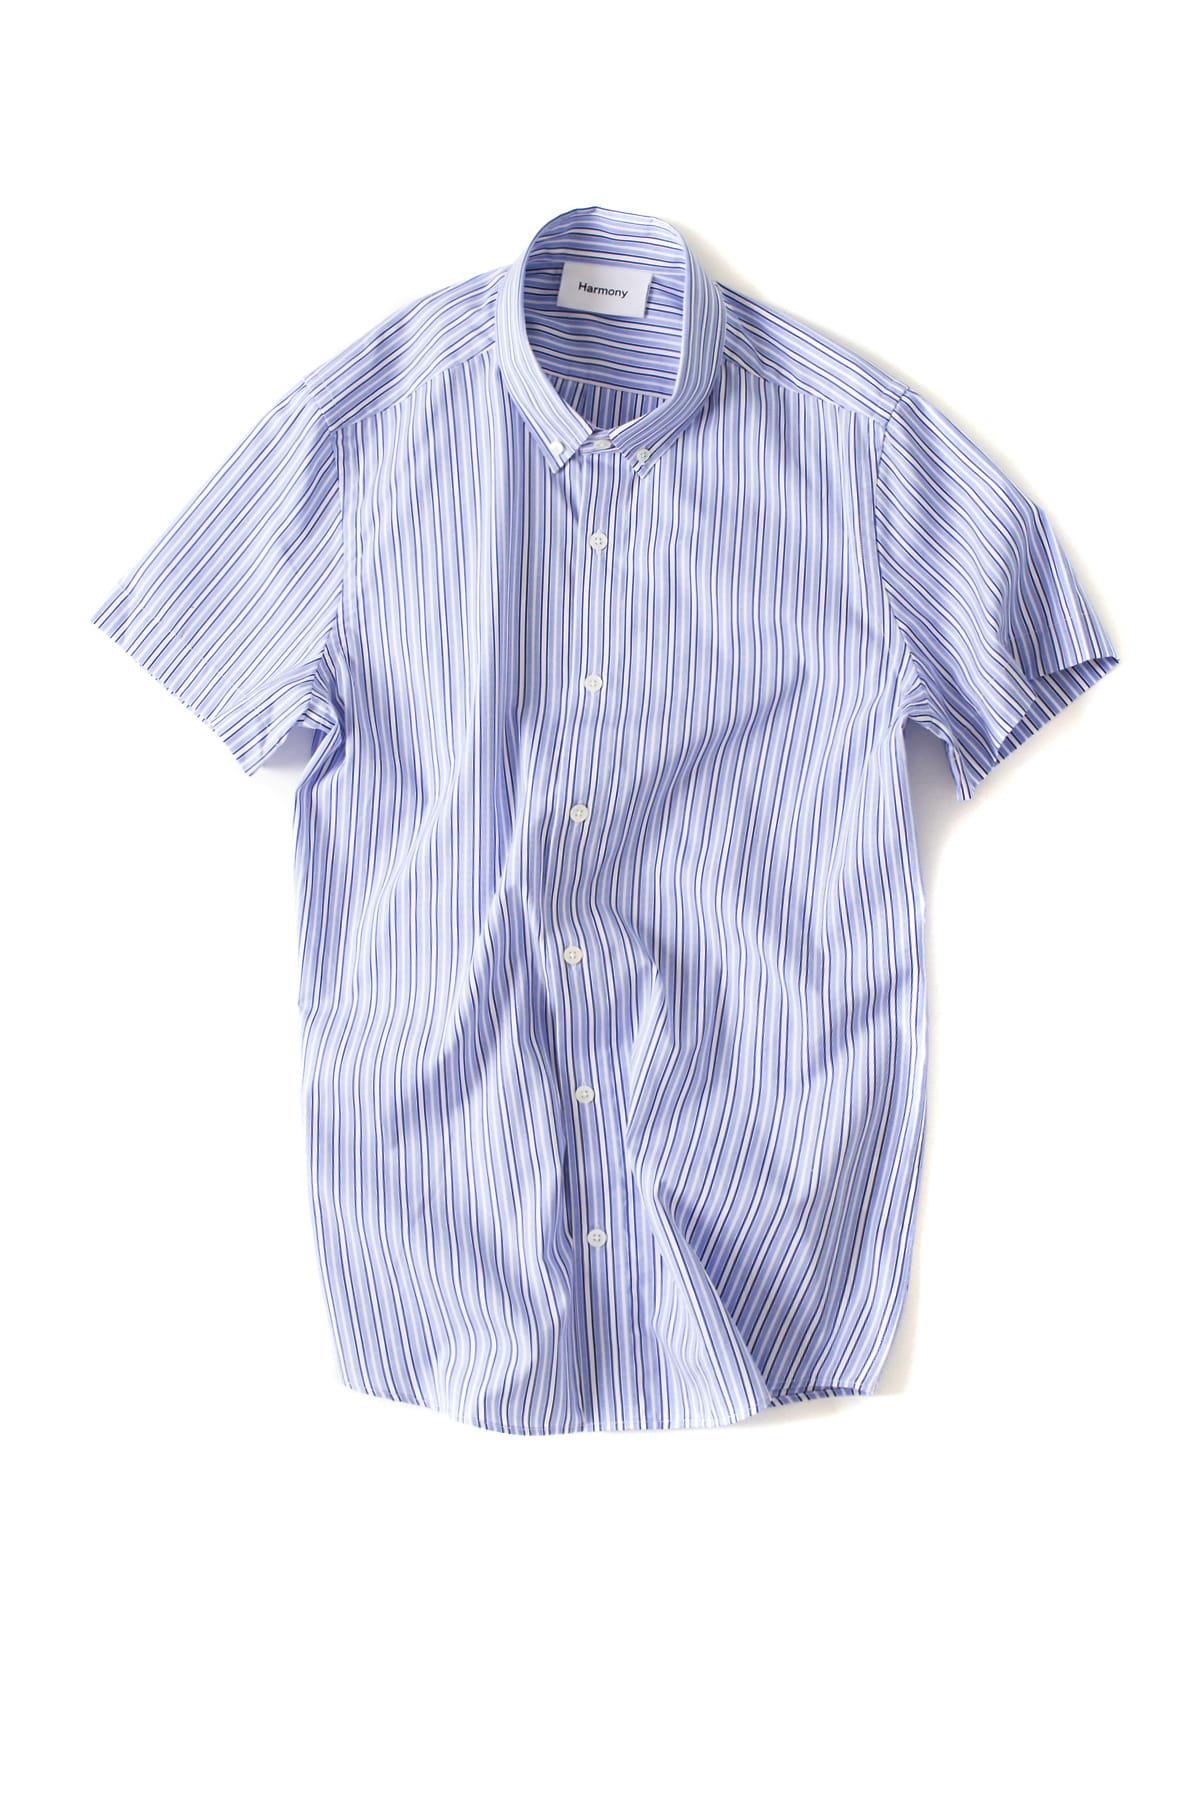 HARMONY : Camden Shirt (Blue Striped)